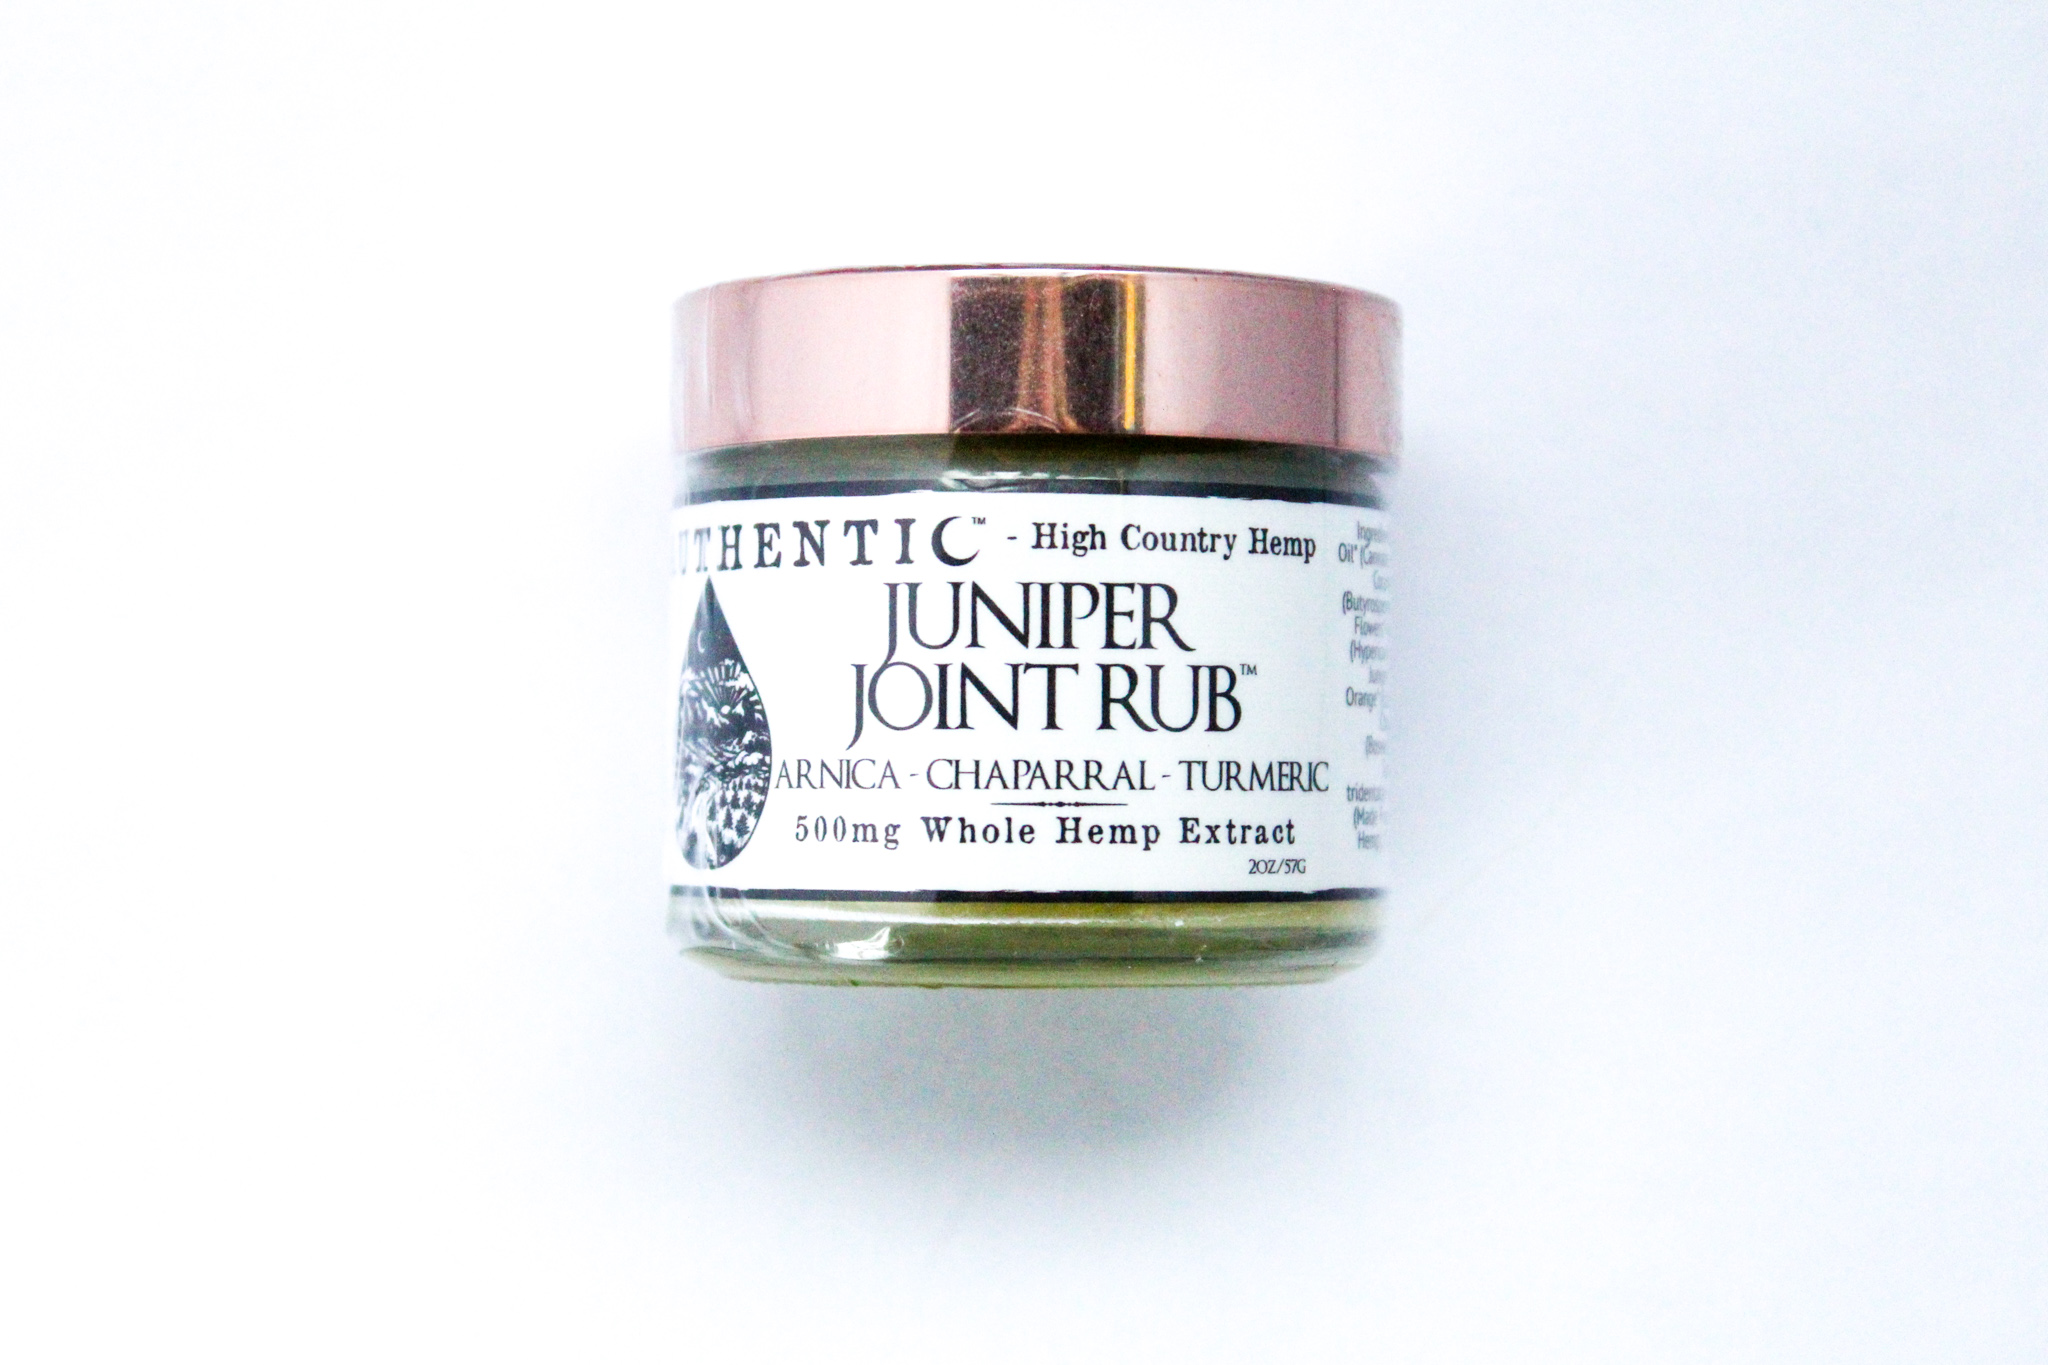 Image of Authentic – Juniper Joint Rub